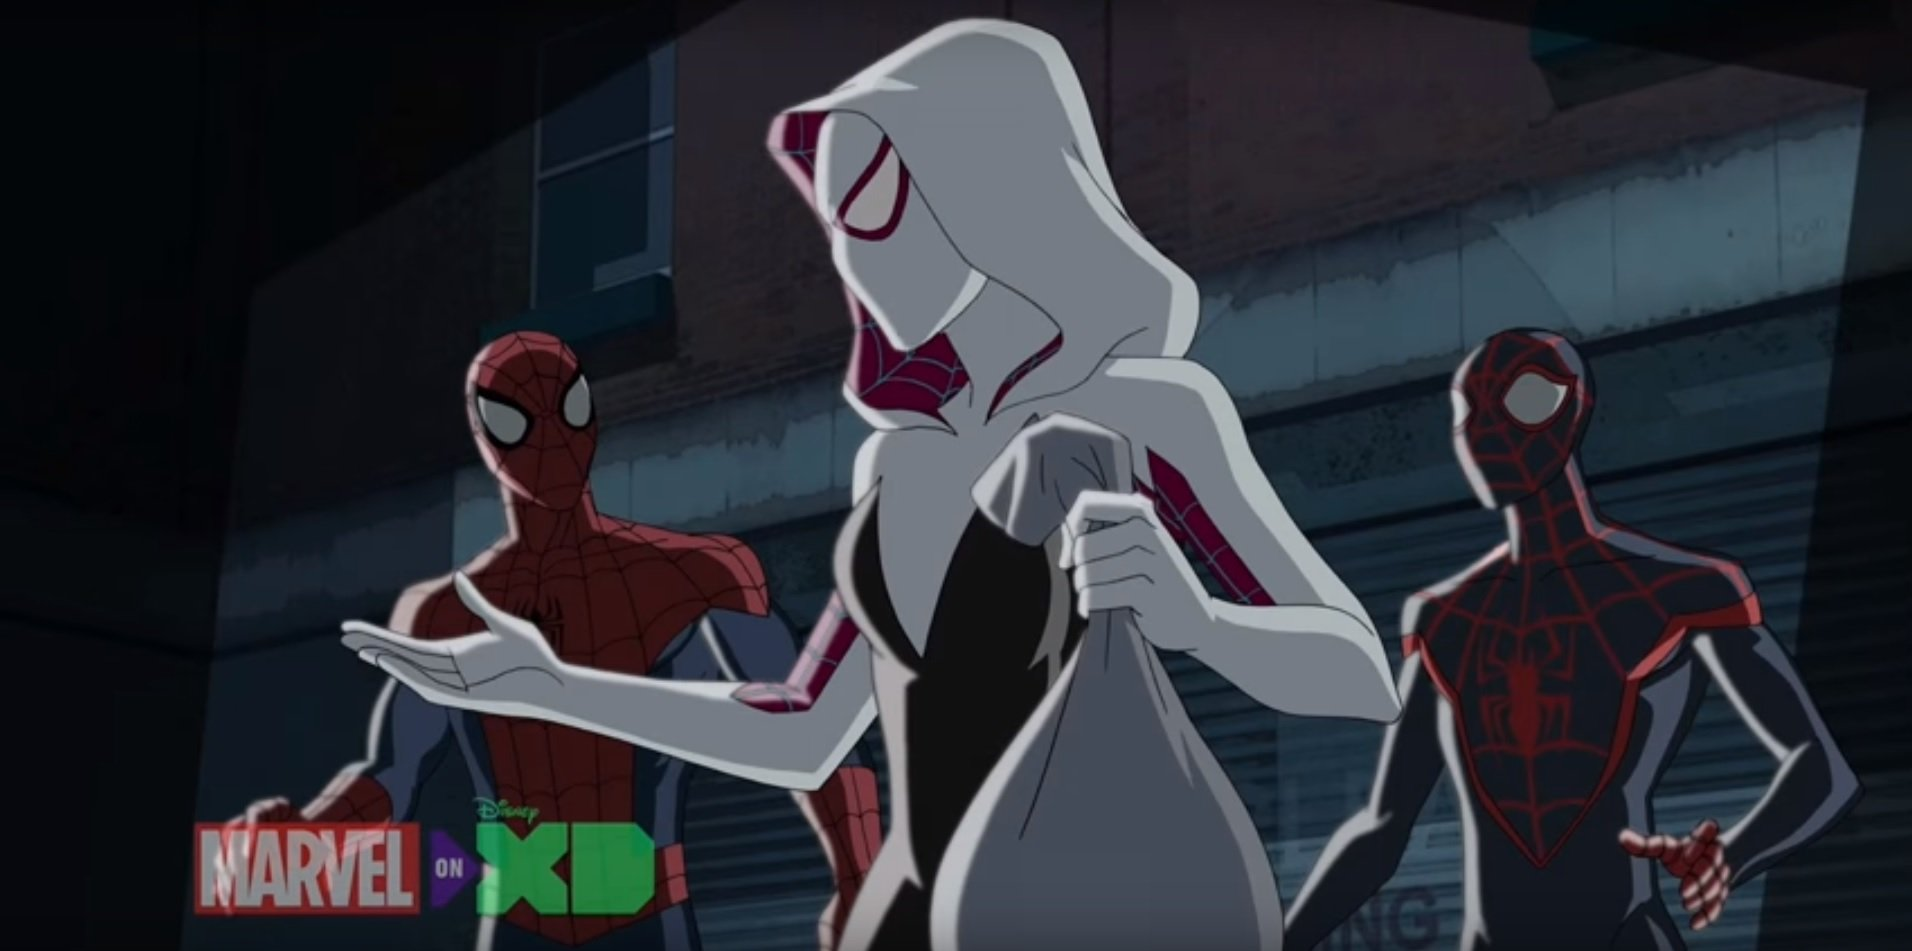 check out spider-gwen's first animated appearance on ultimate spider